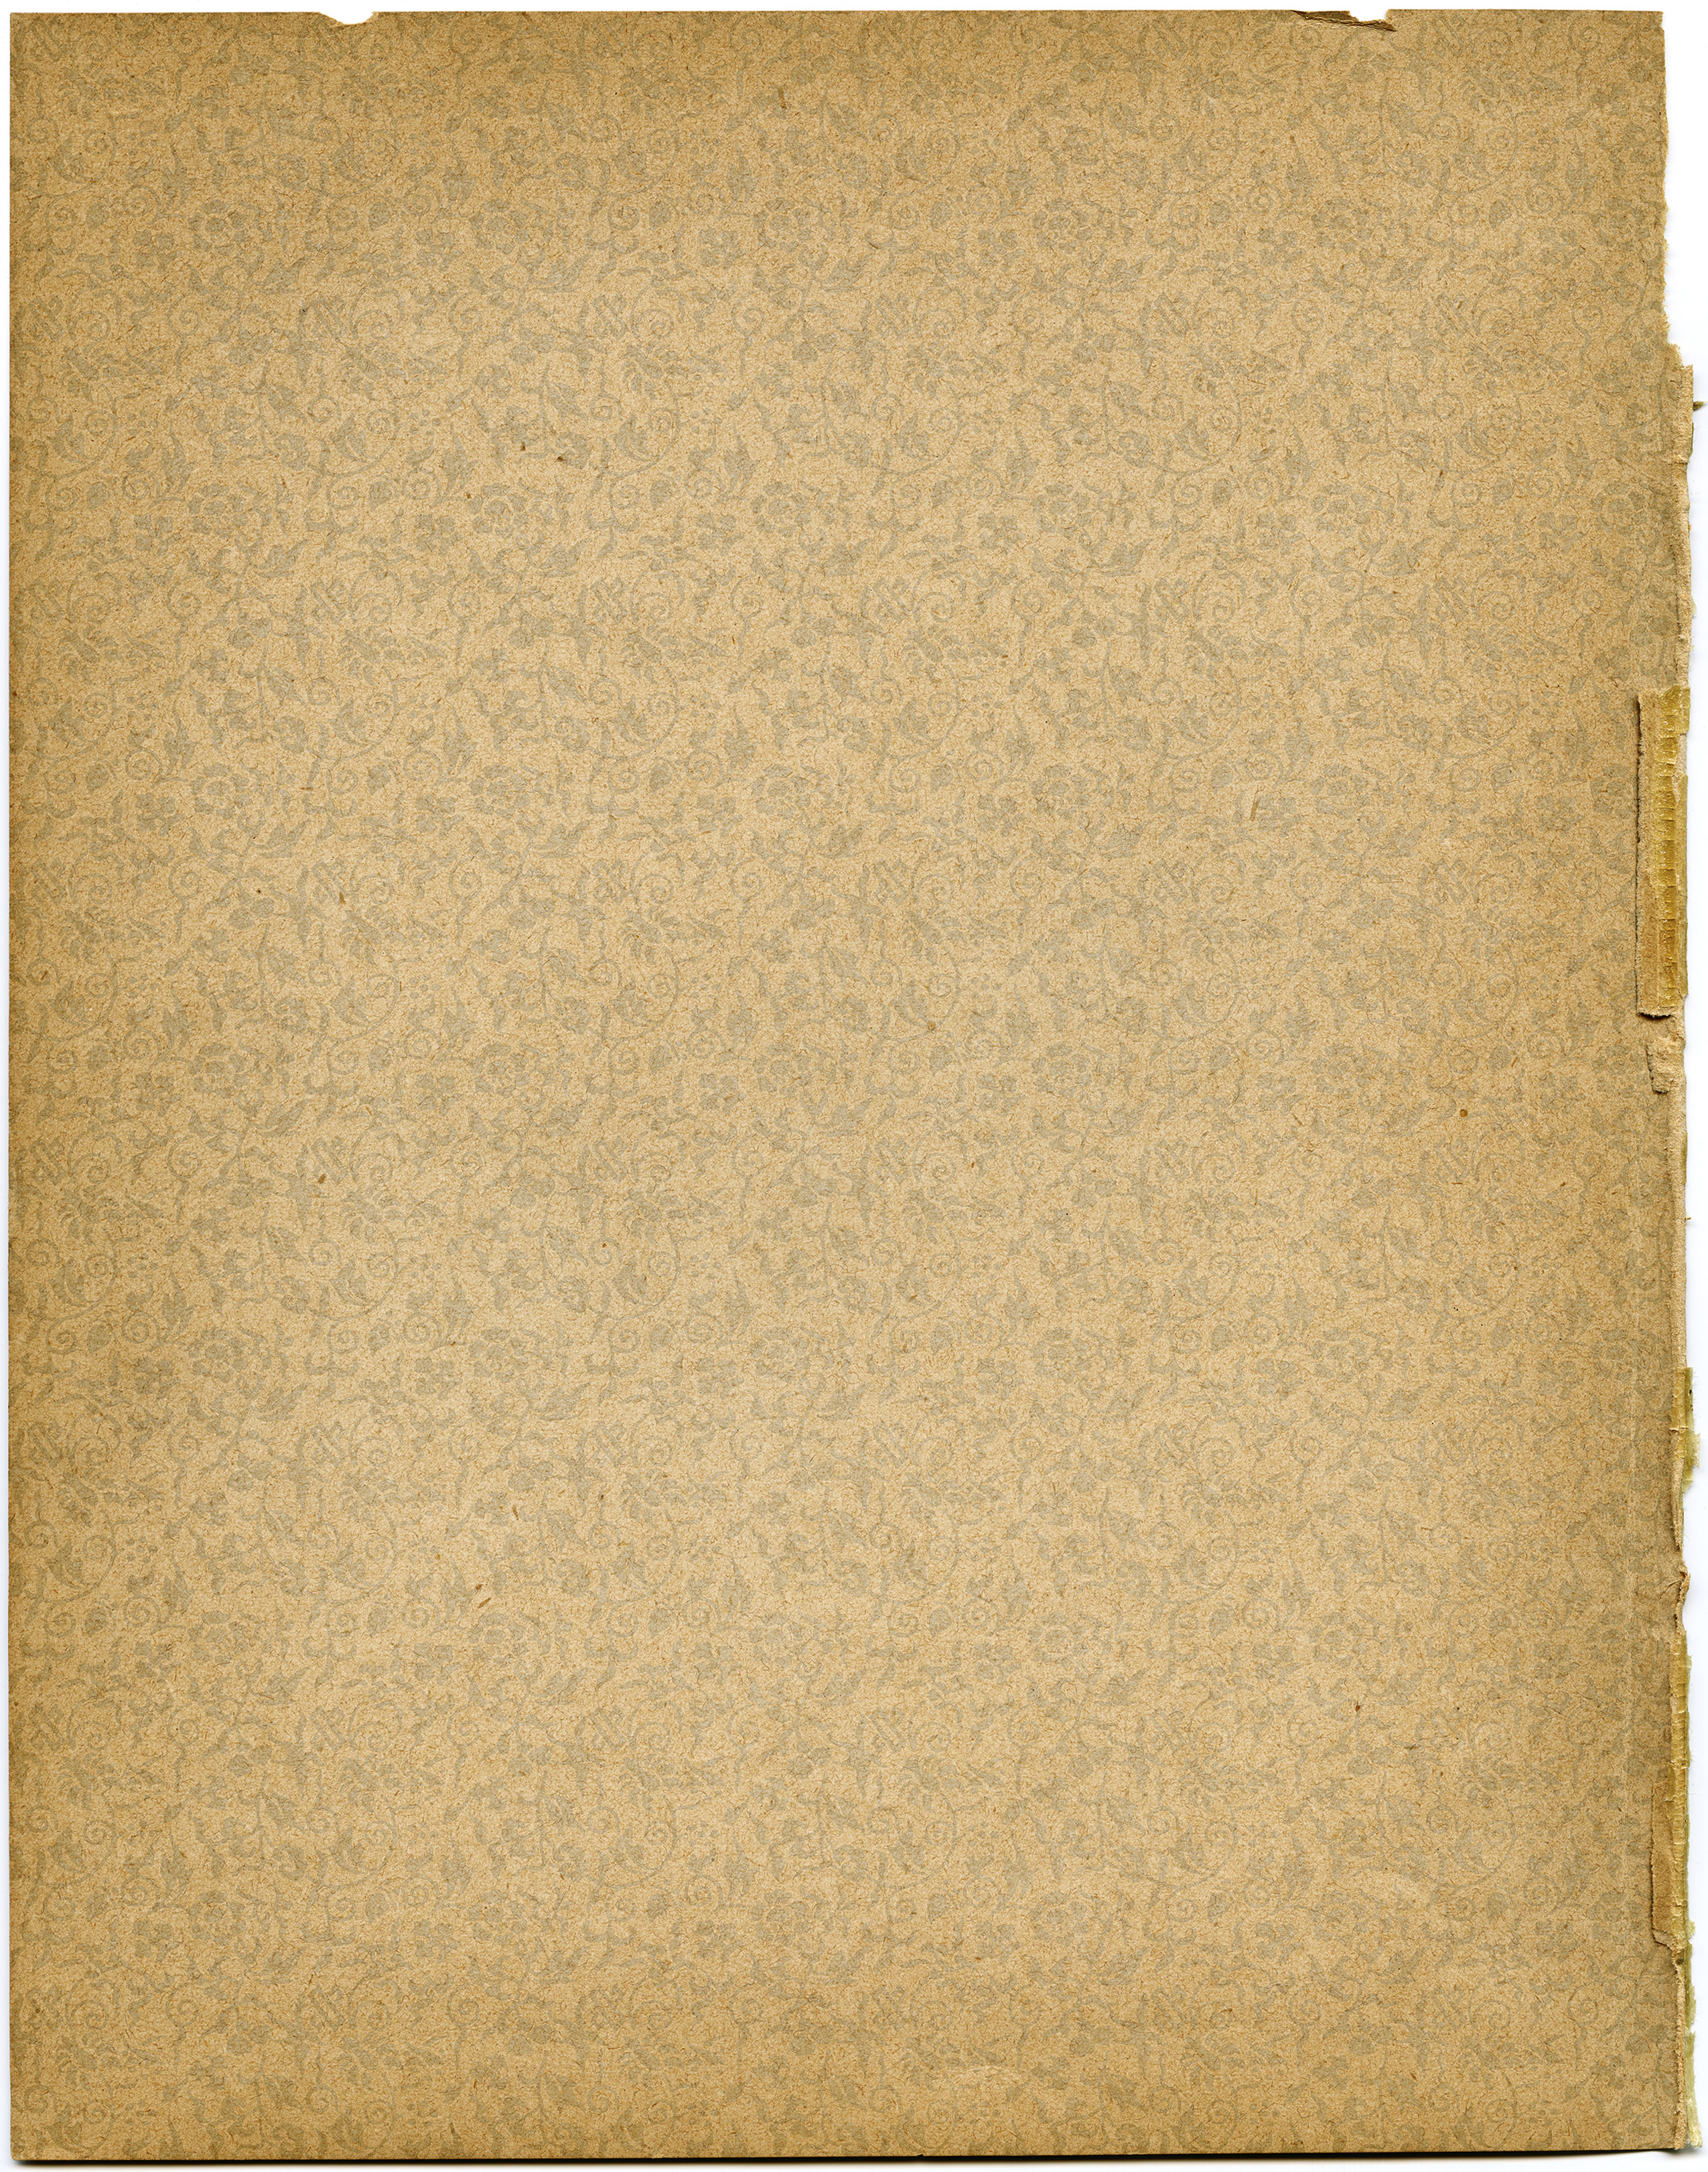 shabby aged endpaper, vintage paper graphics, old yellowed paper, antique book page, digital texture image